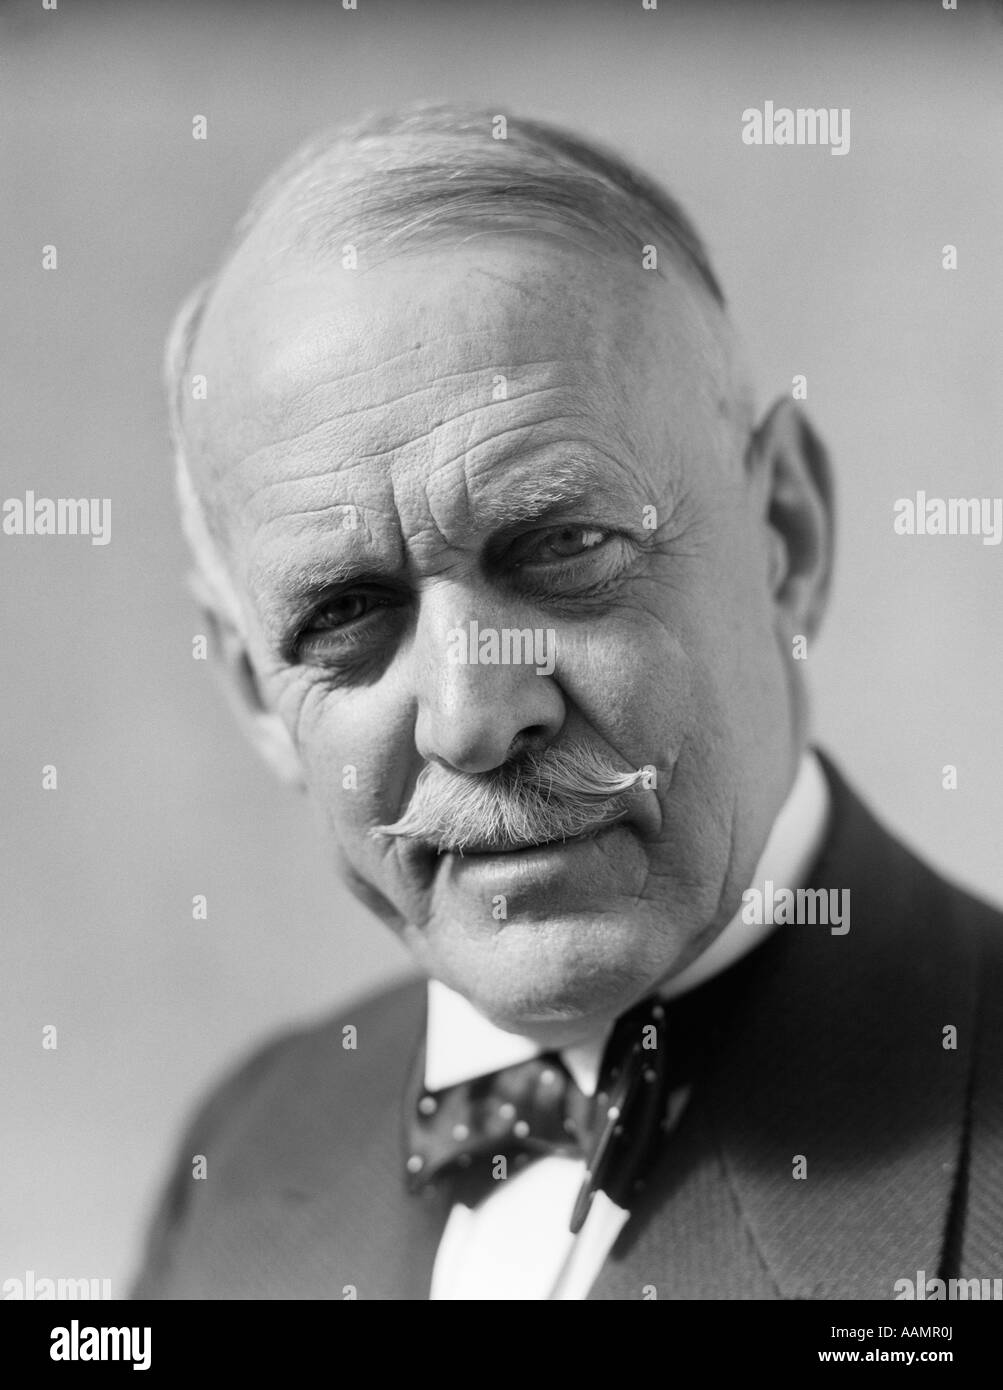 1930s PORTRAIT SENIOR OLDER MAN BOW TIE MUSTACHE SERIOUS FACIAL EXPRESSION CONCERN WORRY - Stock Image